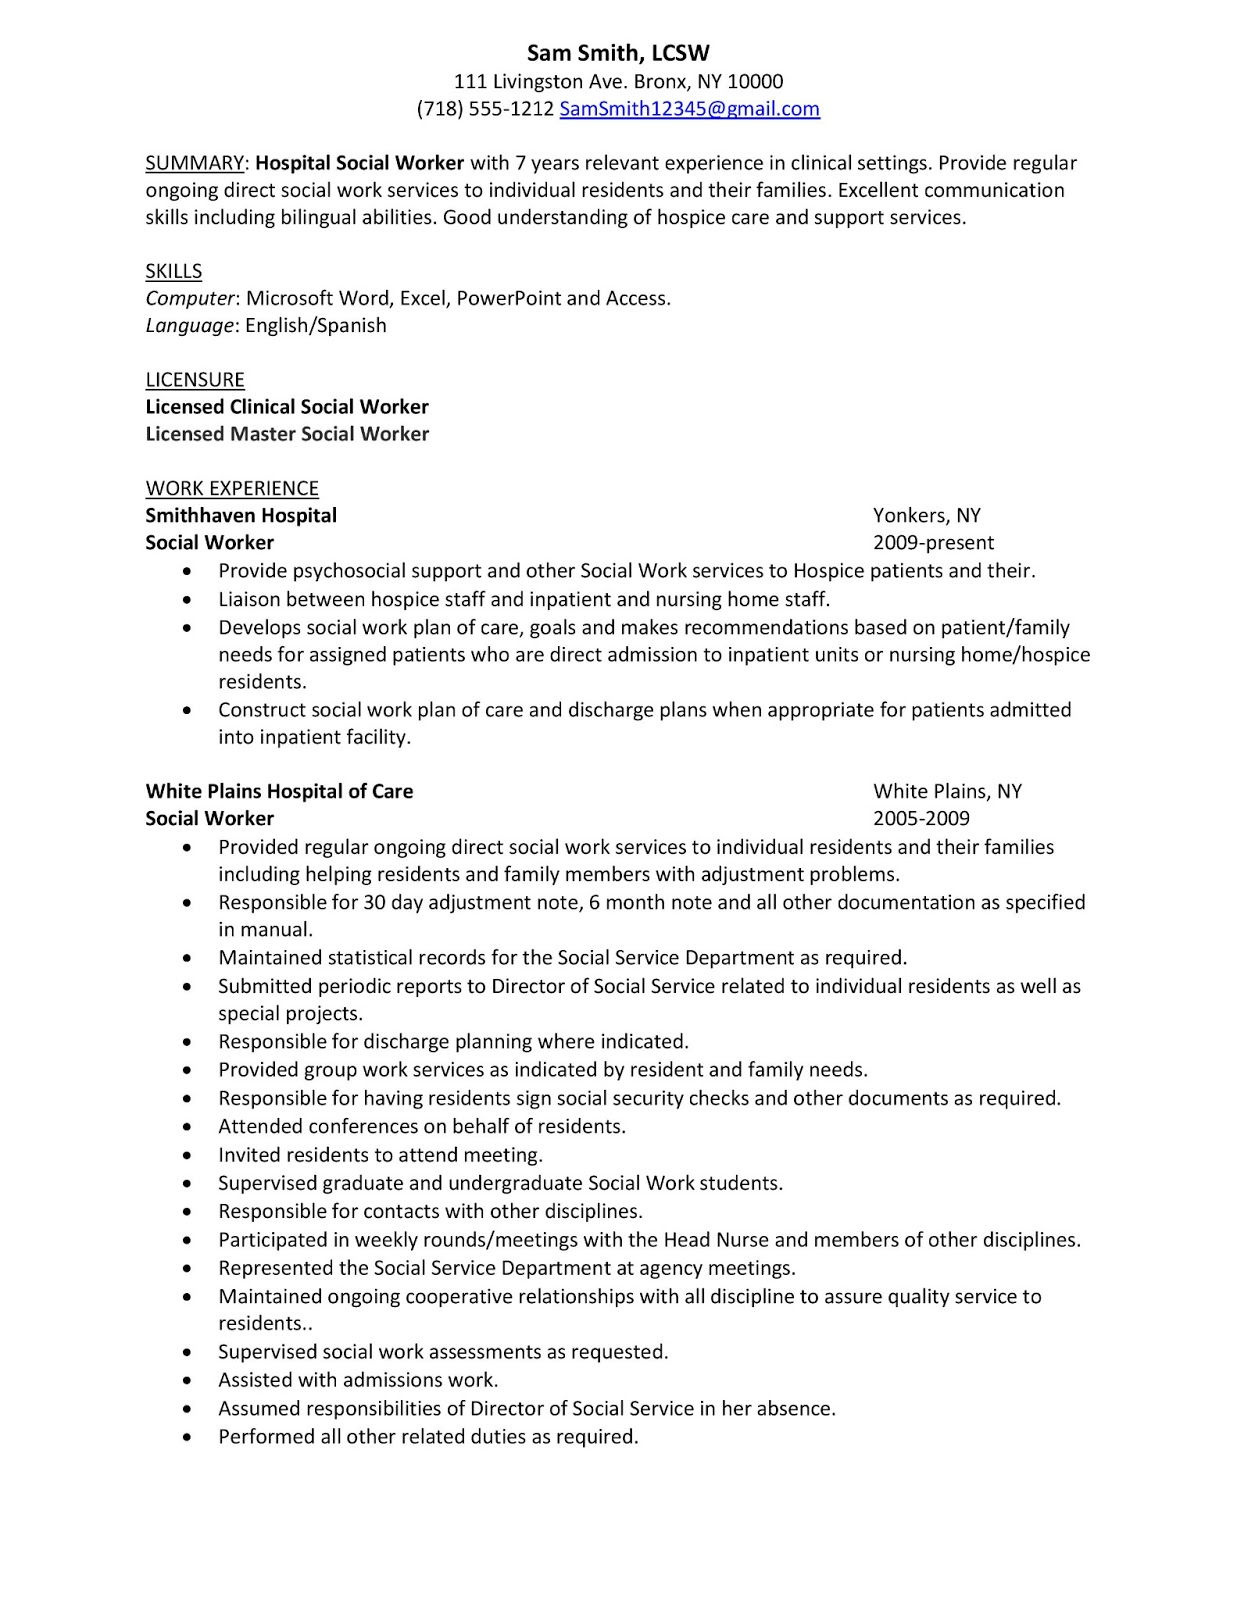 hospital administrator resume format  last will and testament  also hospital administrator resume format hospital administrator resume samplesjobhero